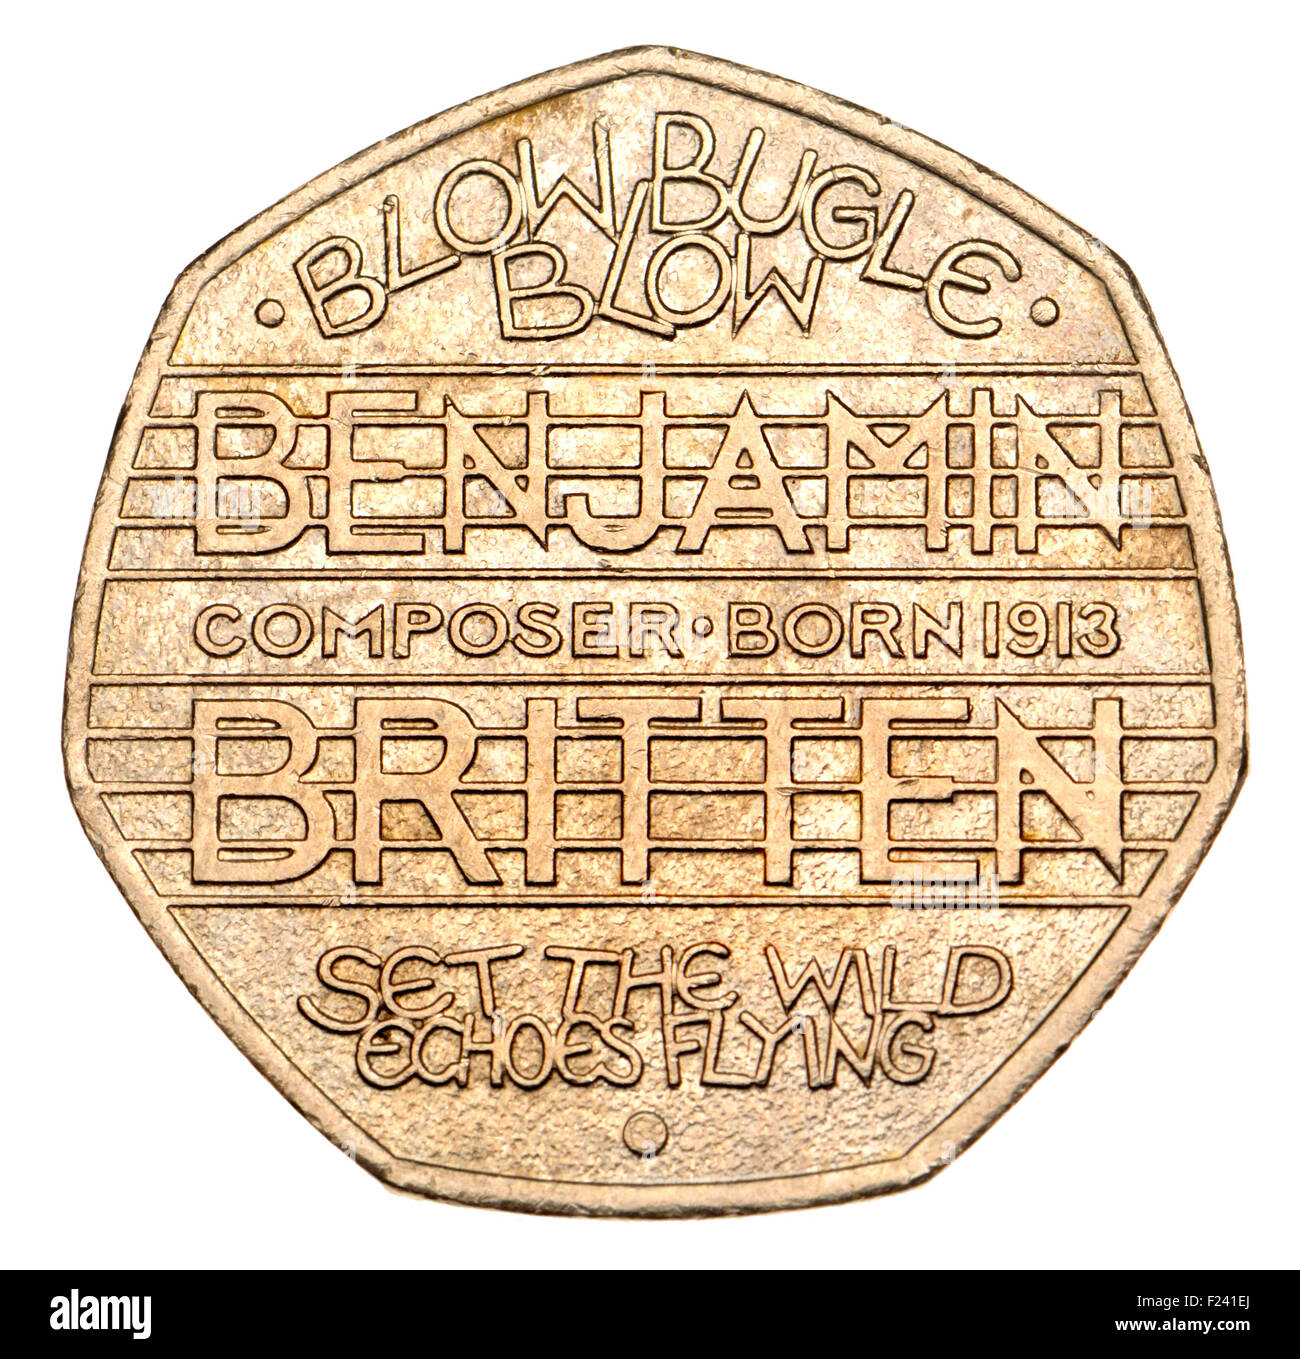 British 50p coin (2013) marking the 100th Anniversary of the Birth of Benjamin Britten, composer - Stock Image